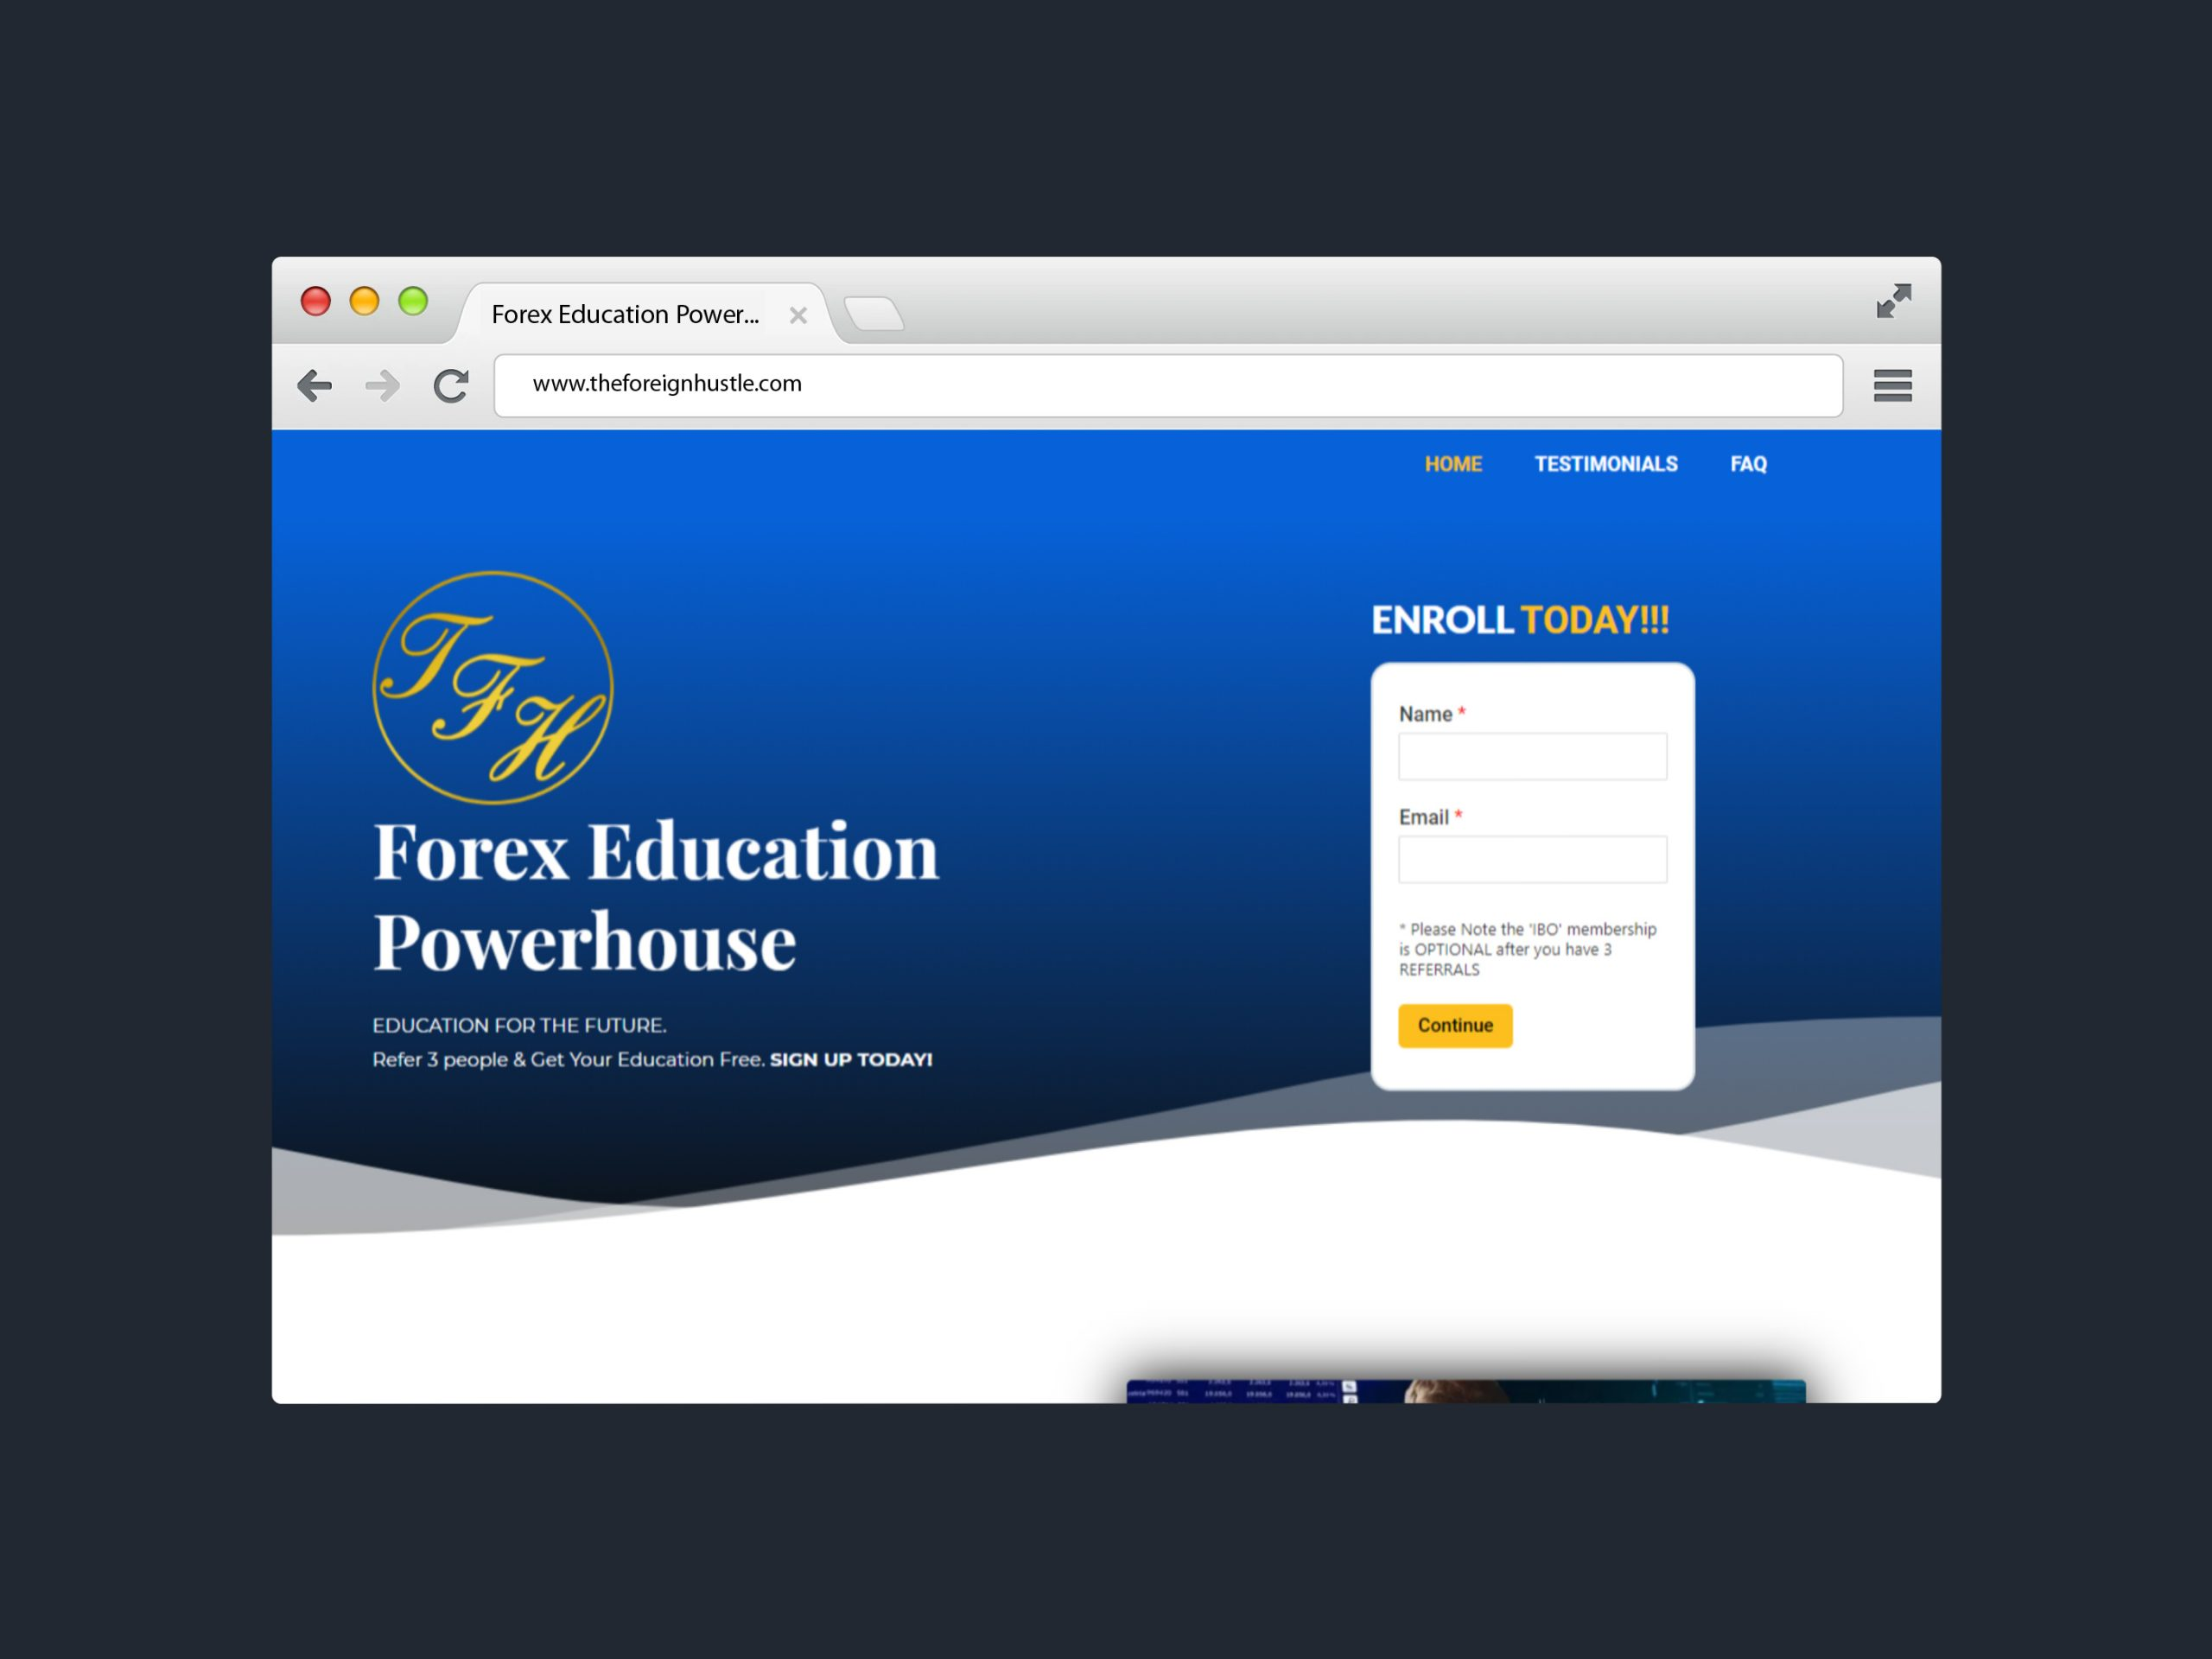 Forex Education Powerhouse